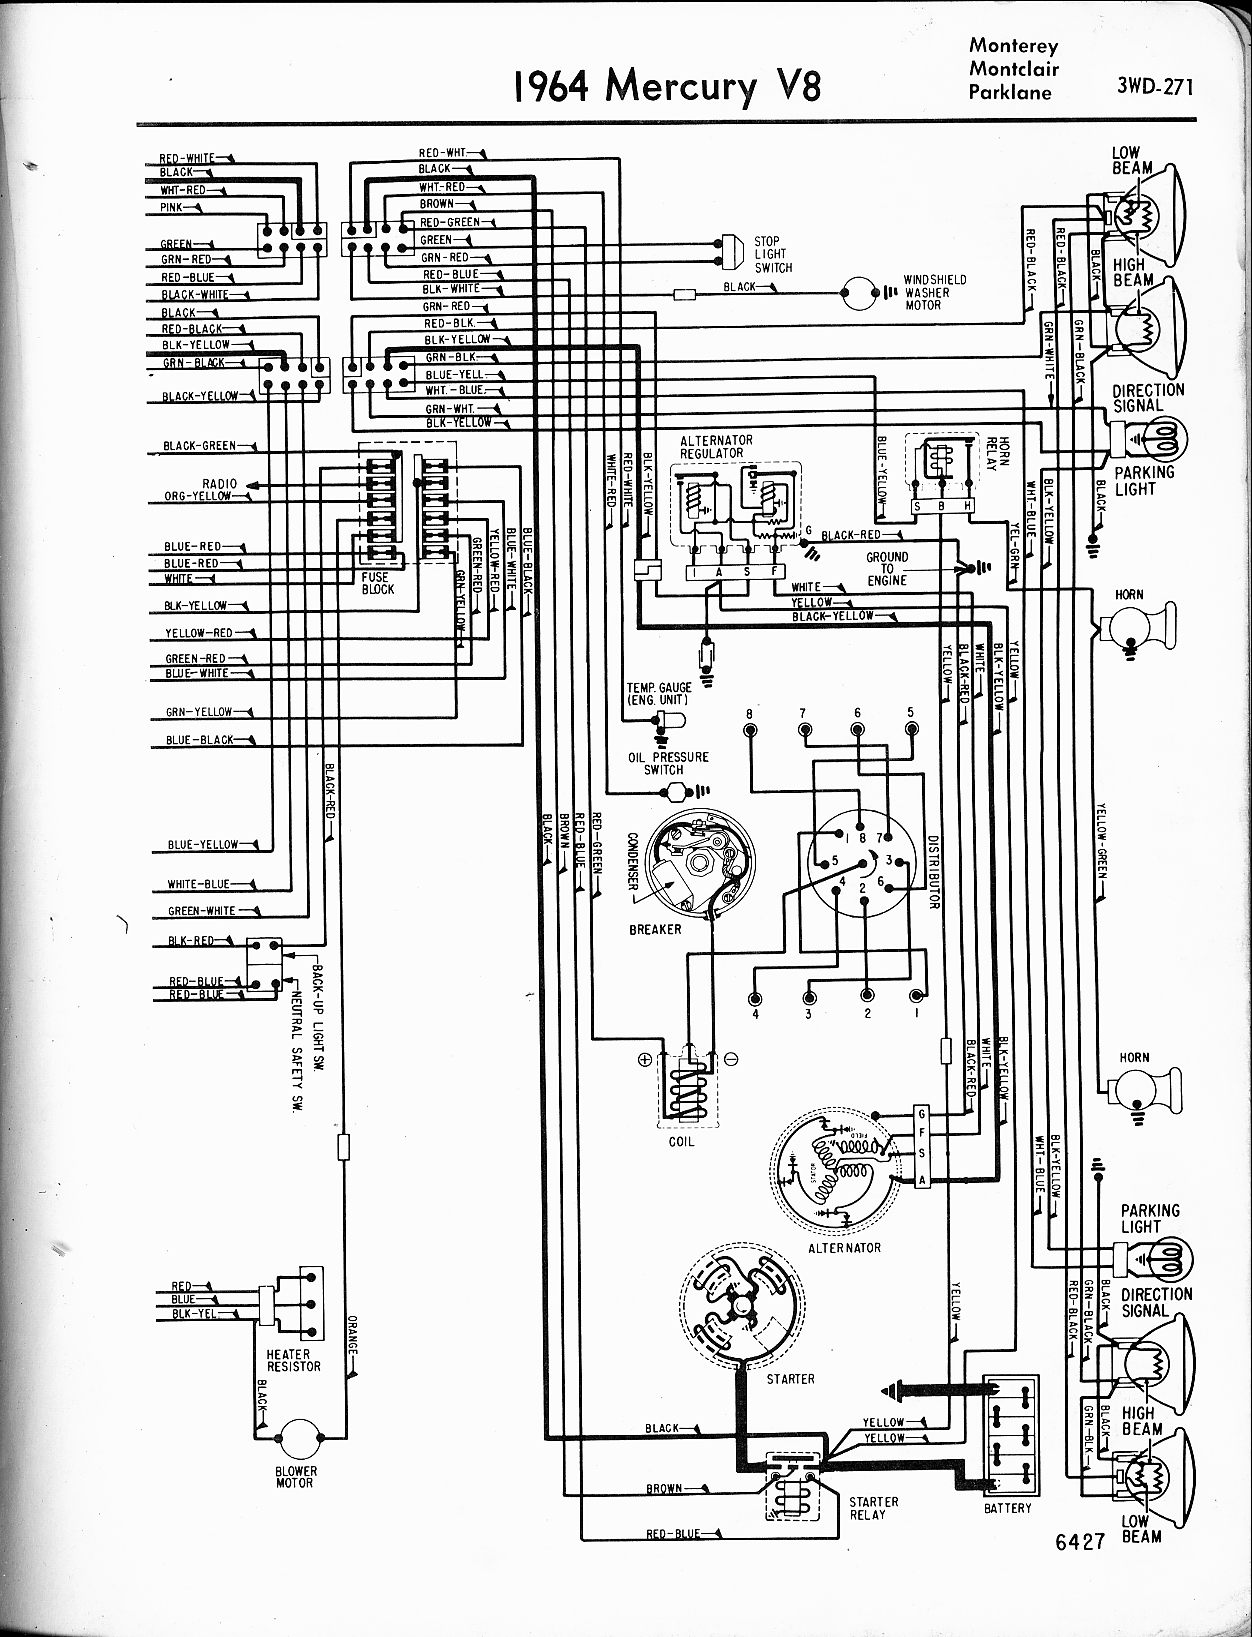 MWire5765 271 mercury wiring diagrams the old car manual project 1955 thunderbird wiring diagram at gsmx.co